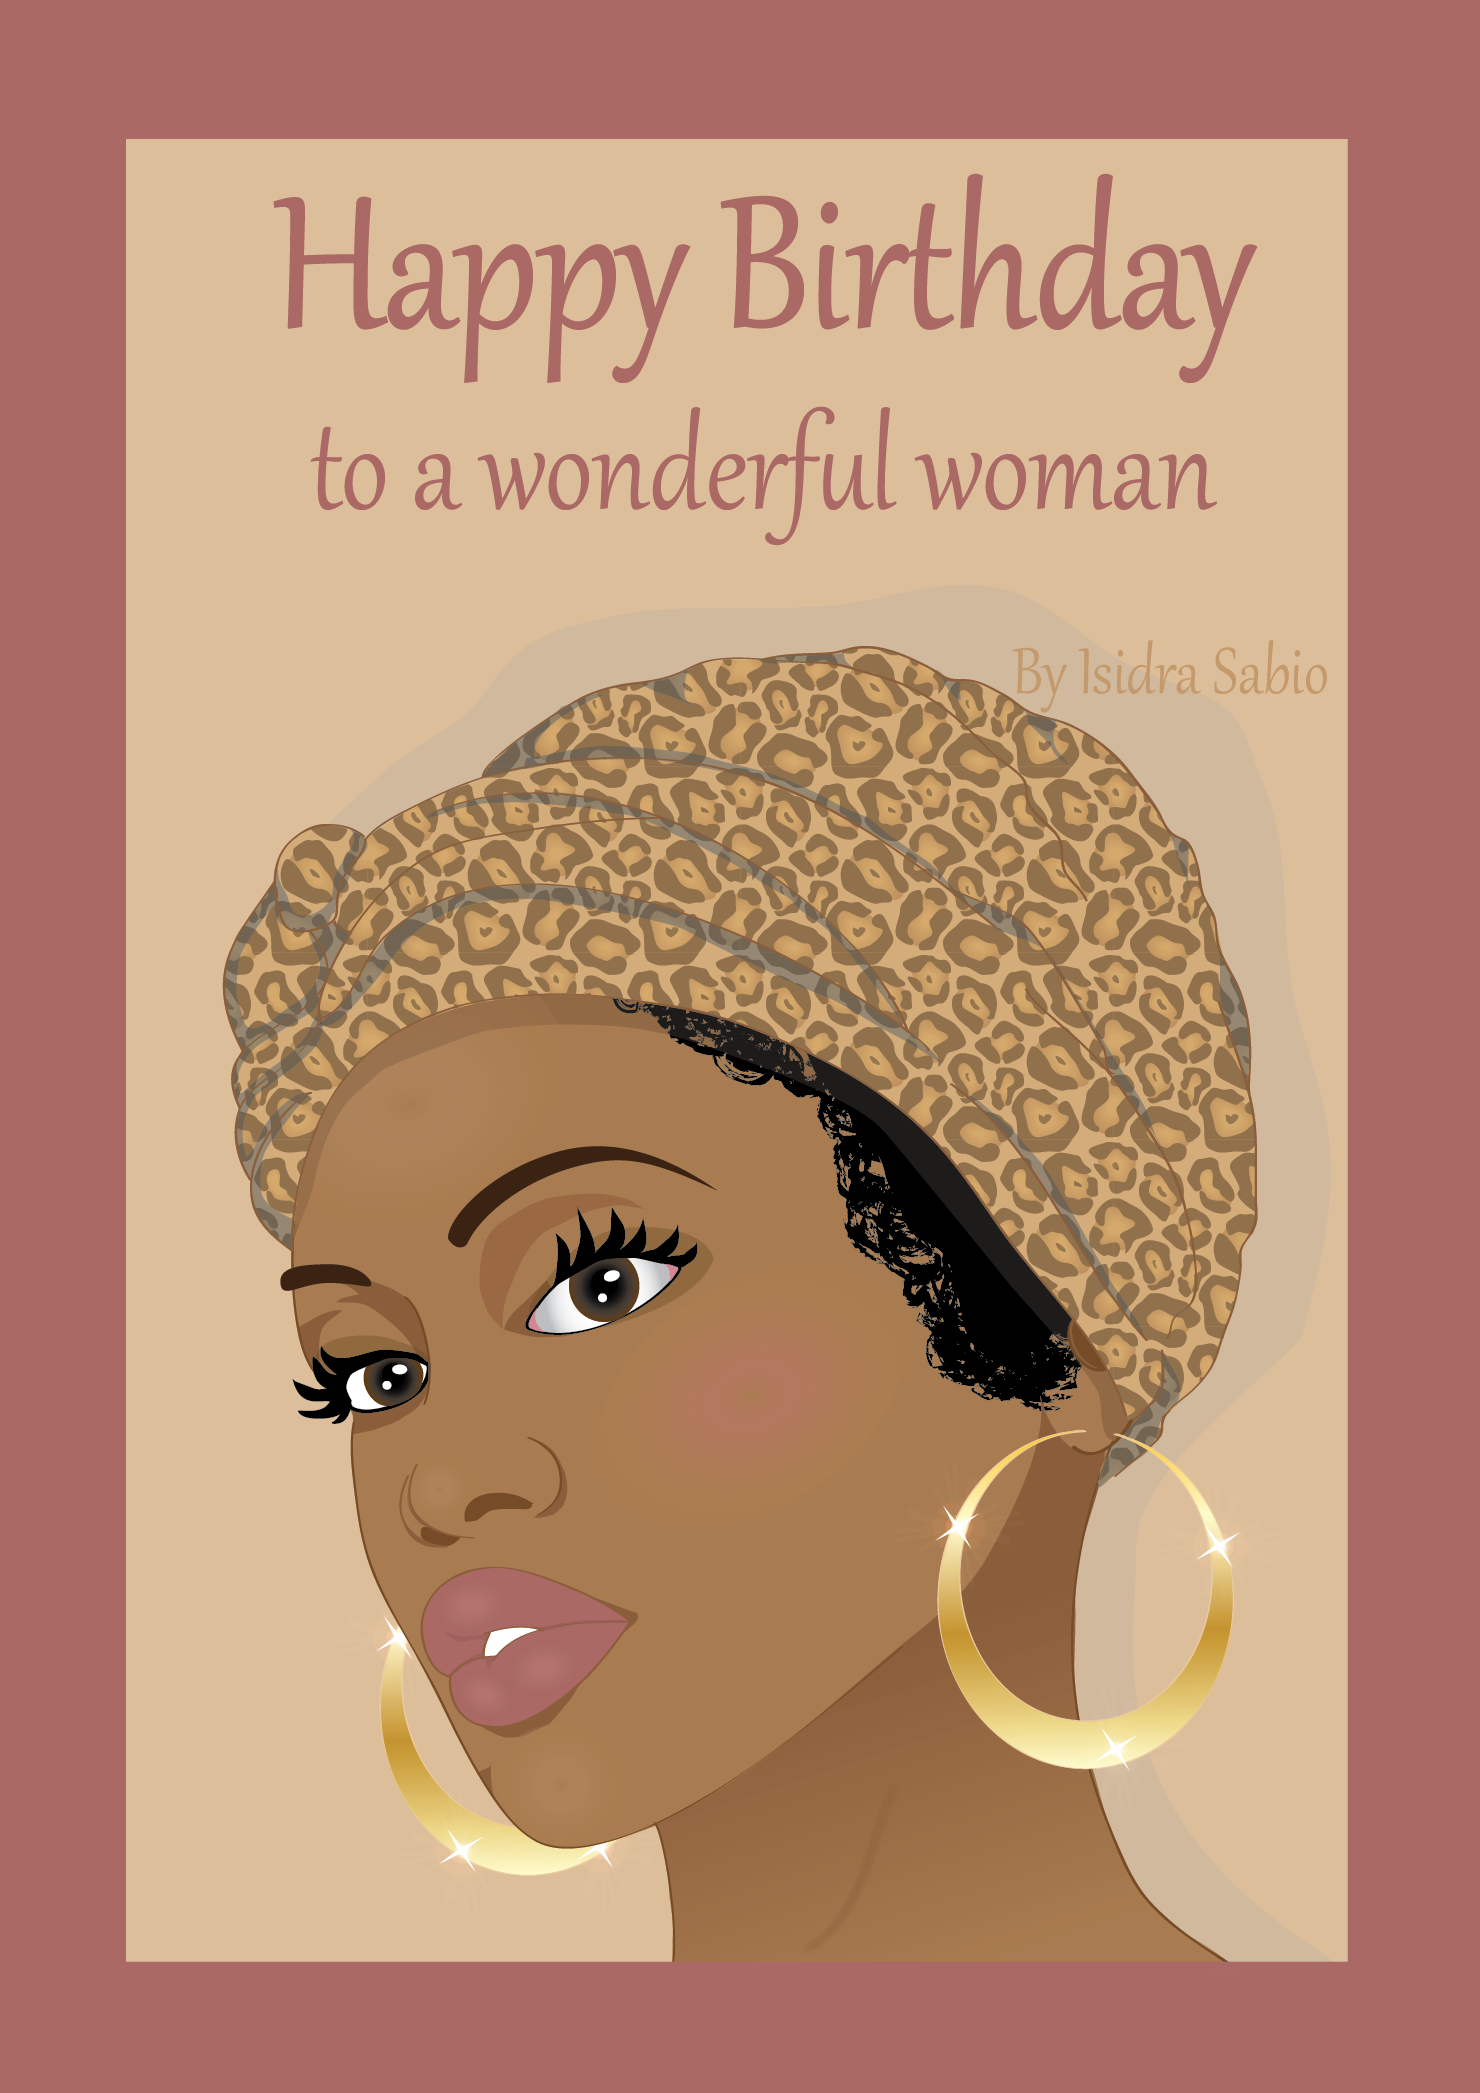 Image Result For Happy Birthday Niece African American Cards Happy Birthday Black Birthday Greetings For Women Happy Birthday African American